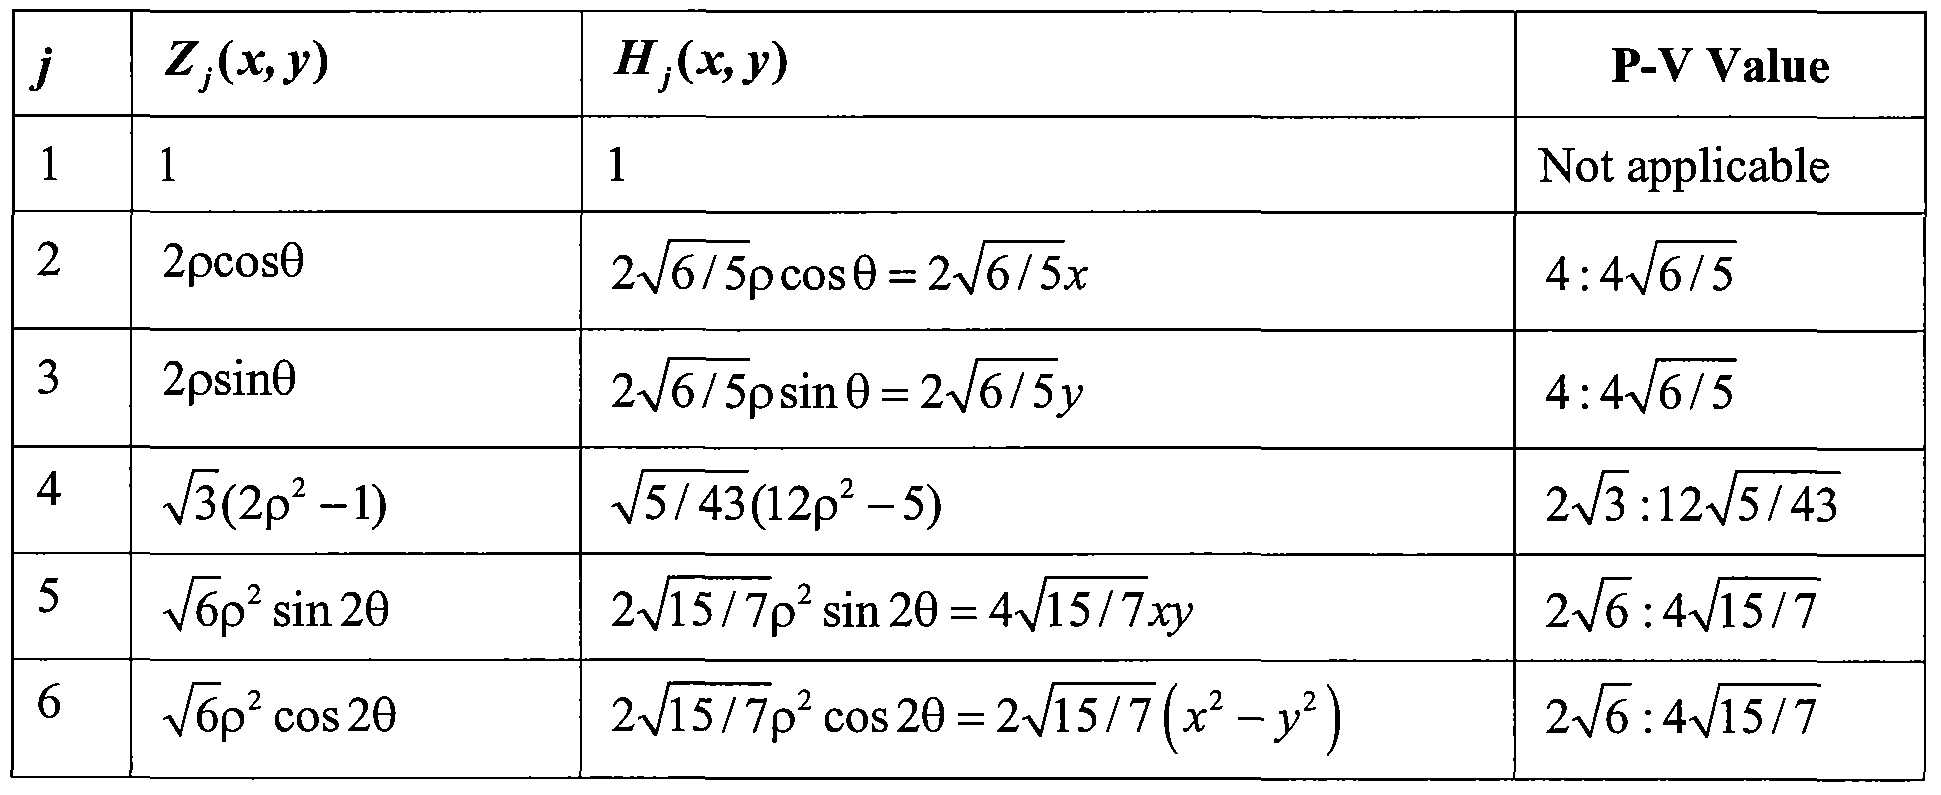 Multiplication Chart 20x20 Imgf000081_0002.png